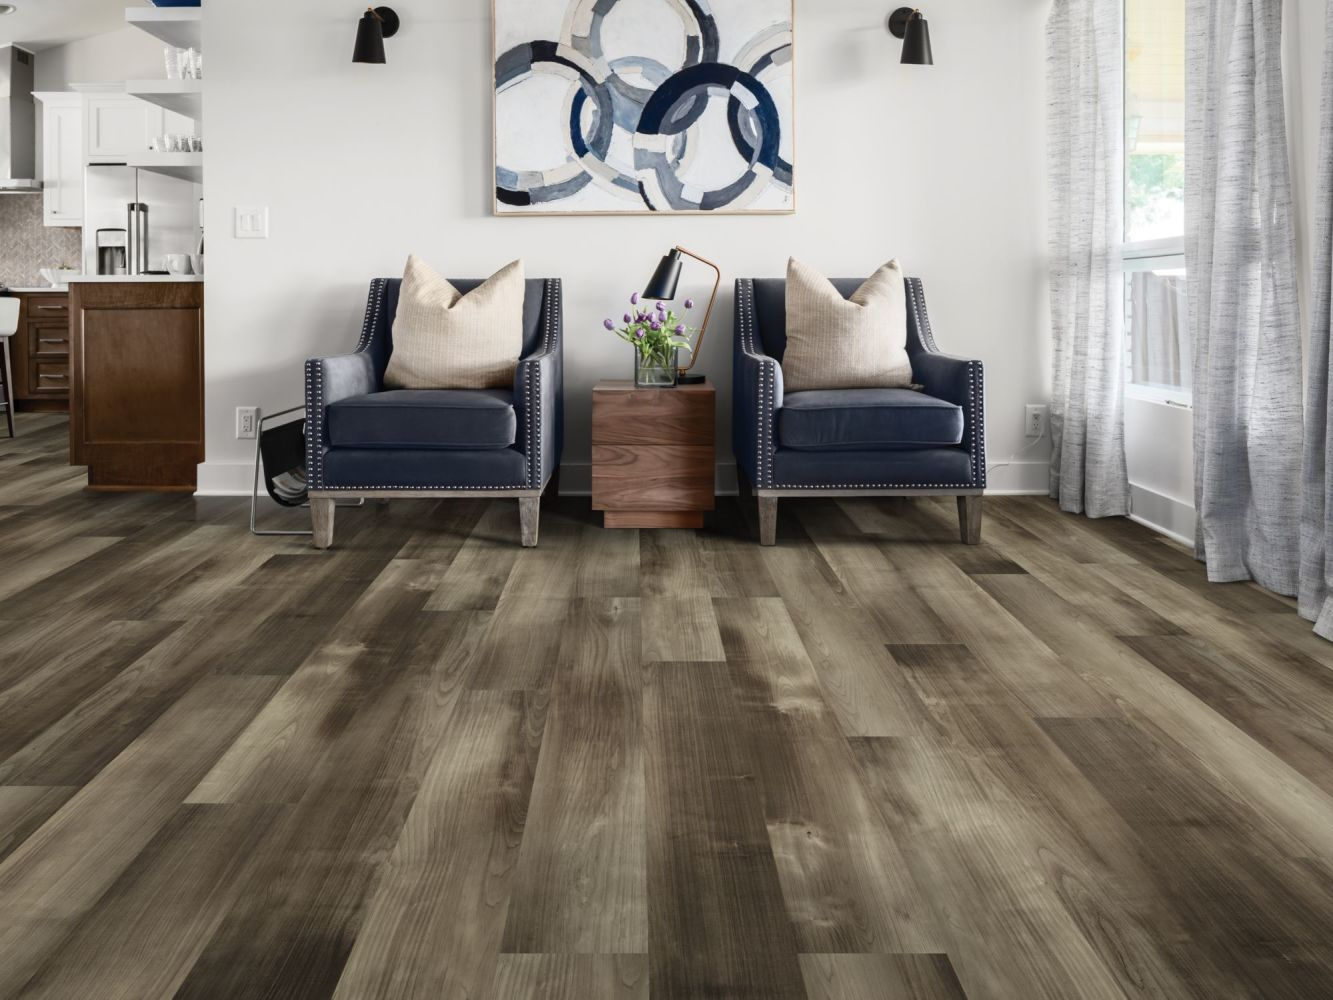 Shaw Floors Resilient Property Solutions Patriot+ Milled Highland Maple 07059_VE308